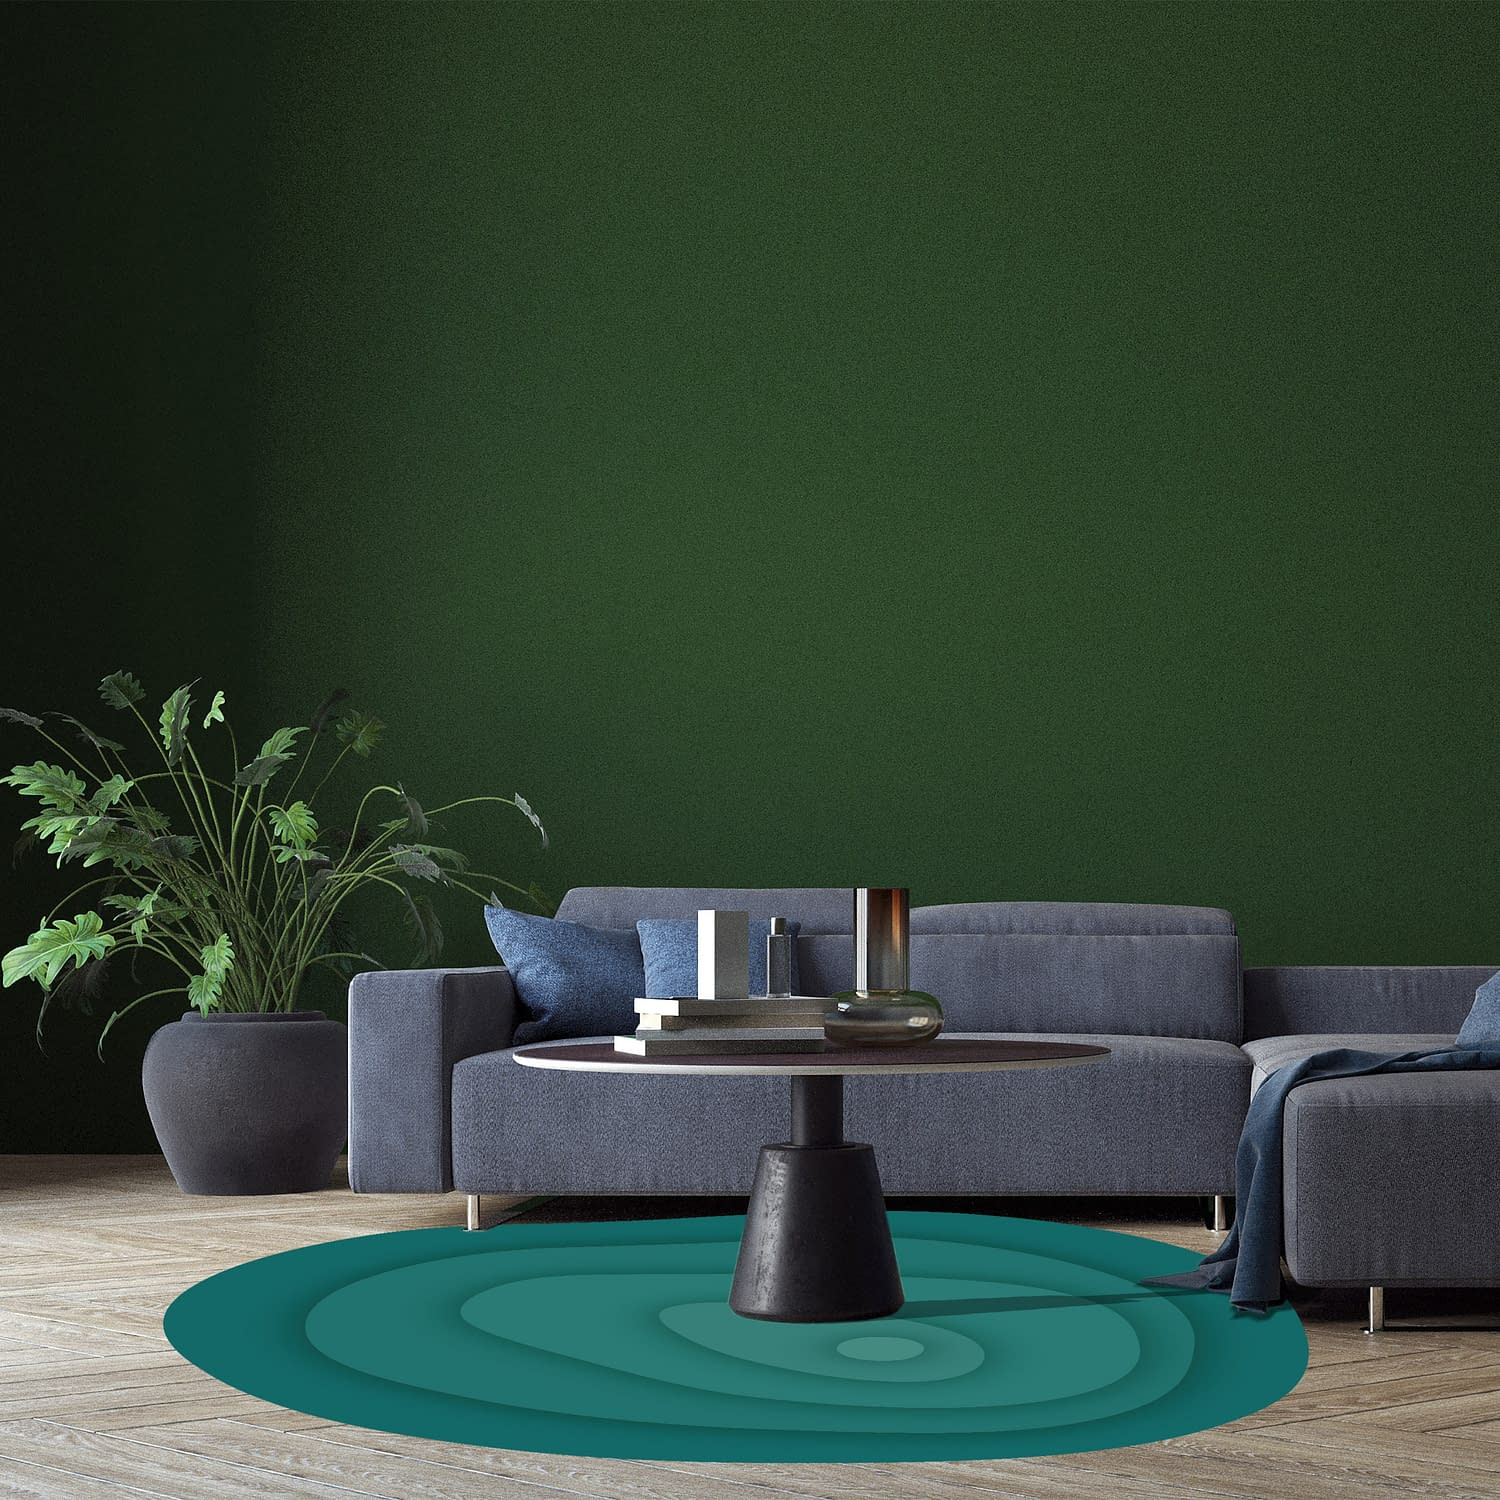 Modern deign of interior living room and green wall pattern text